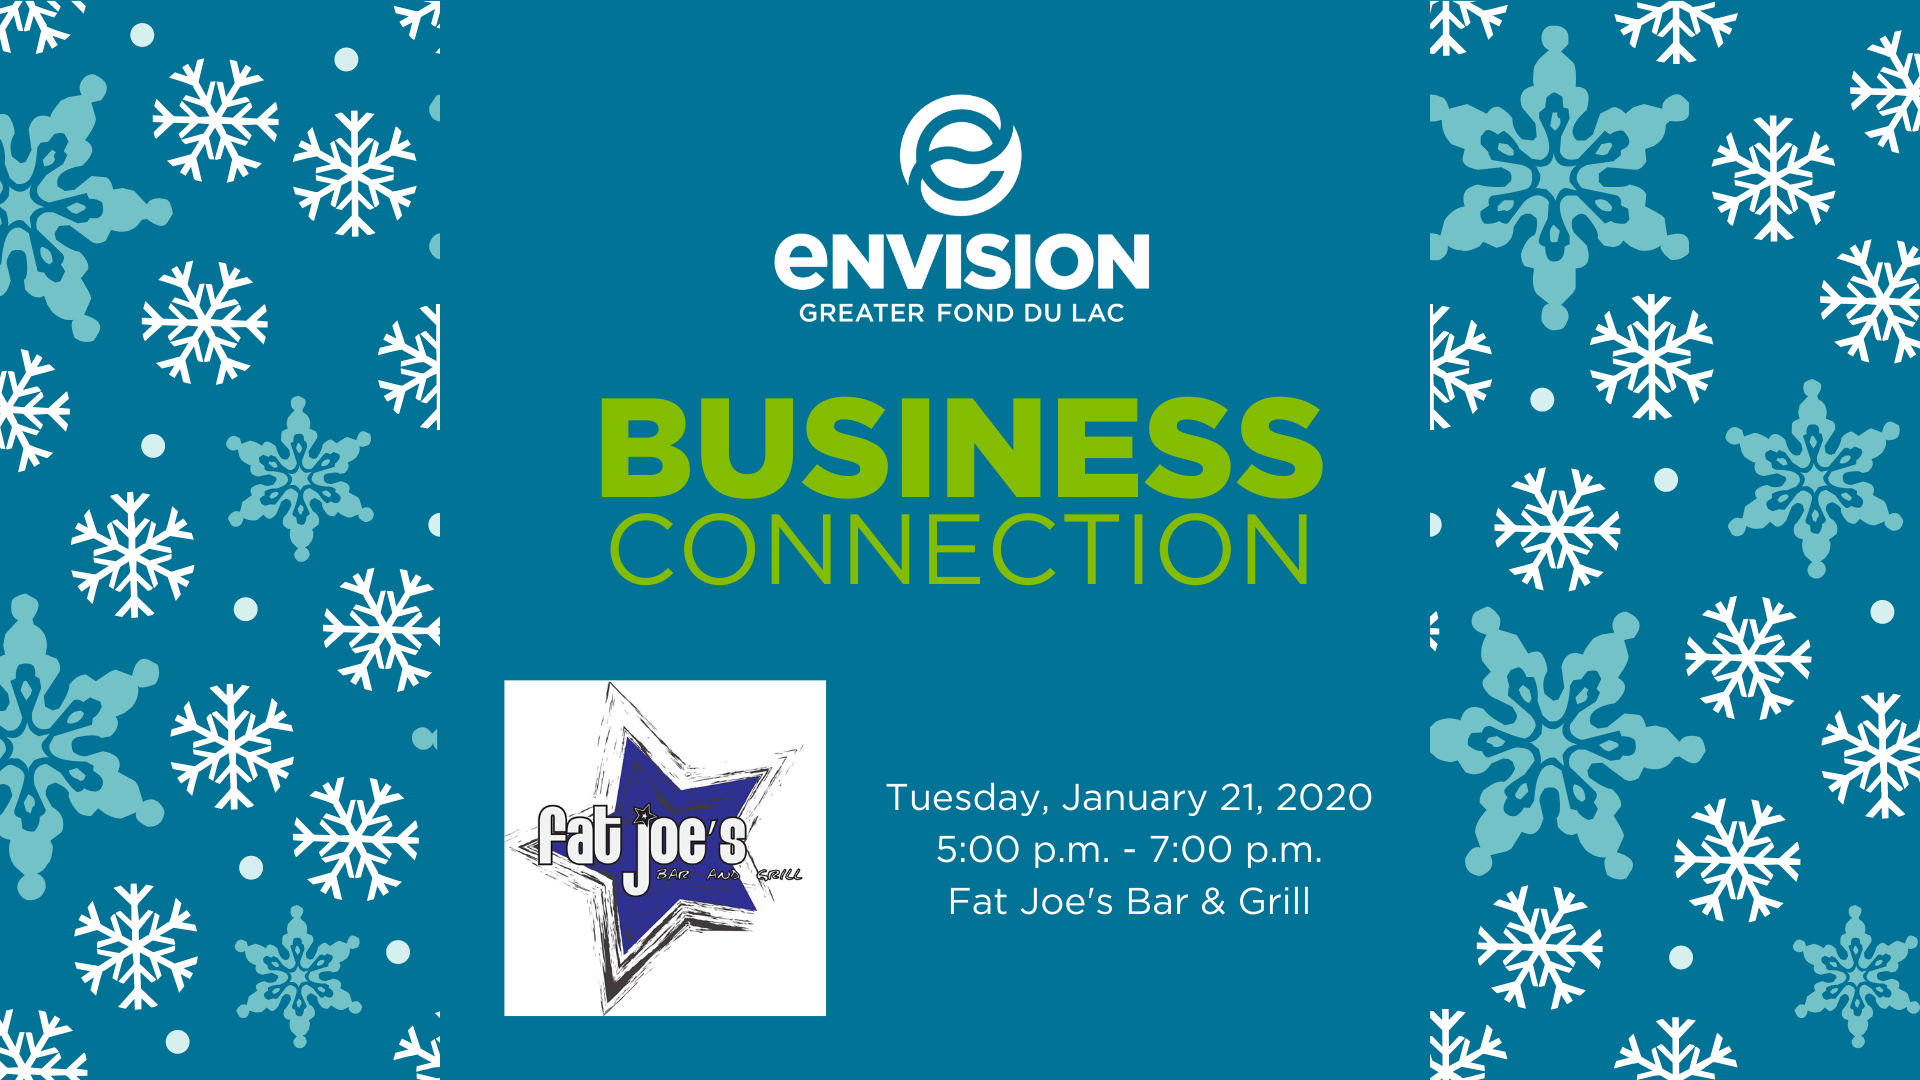 January Business Connection   Envision Greater Fond du Lac 1920x1080